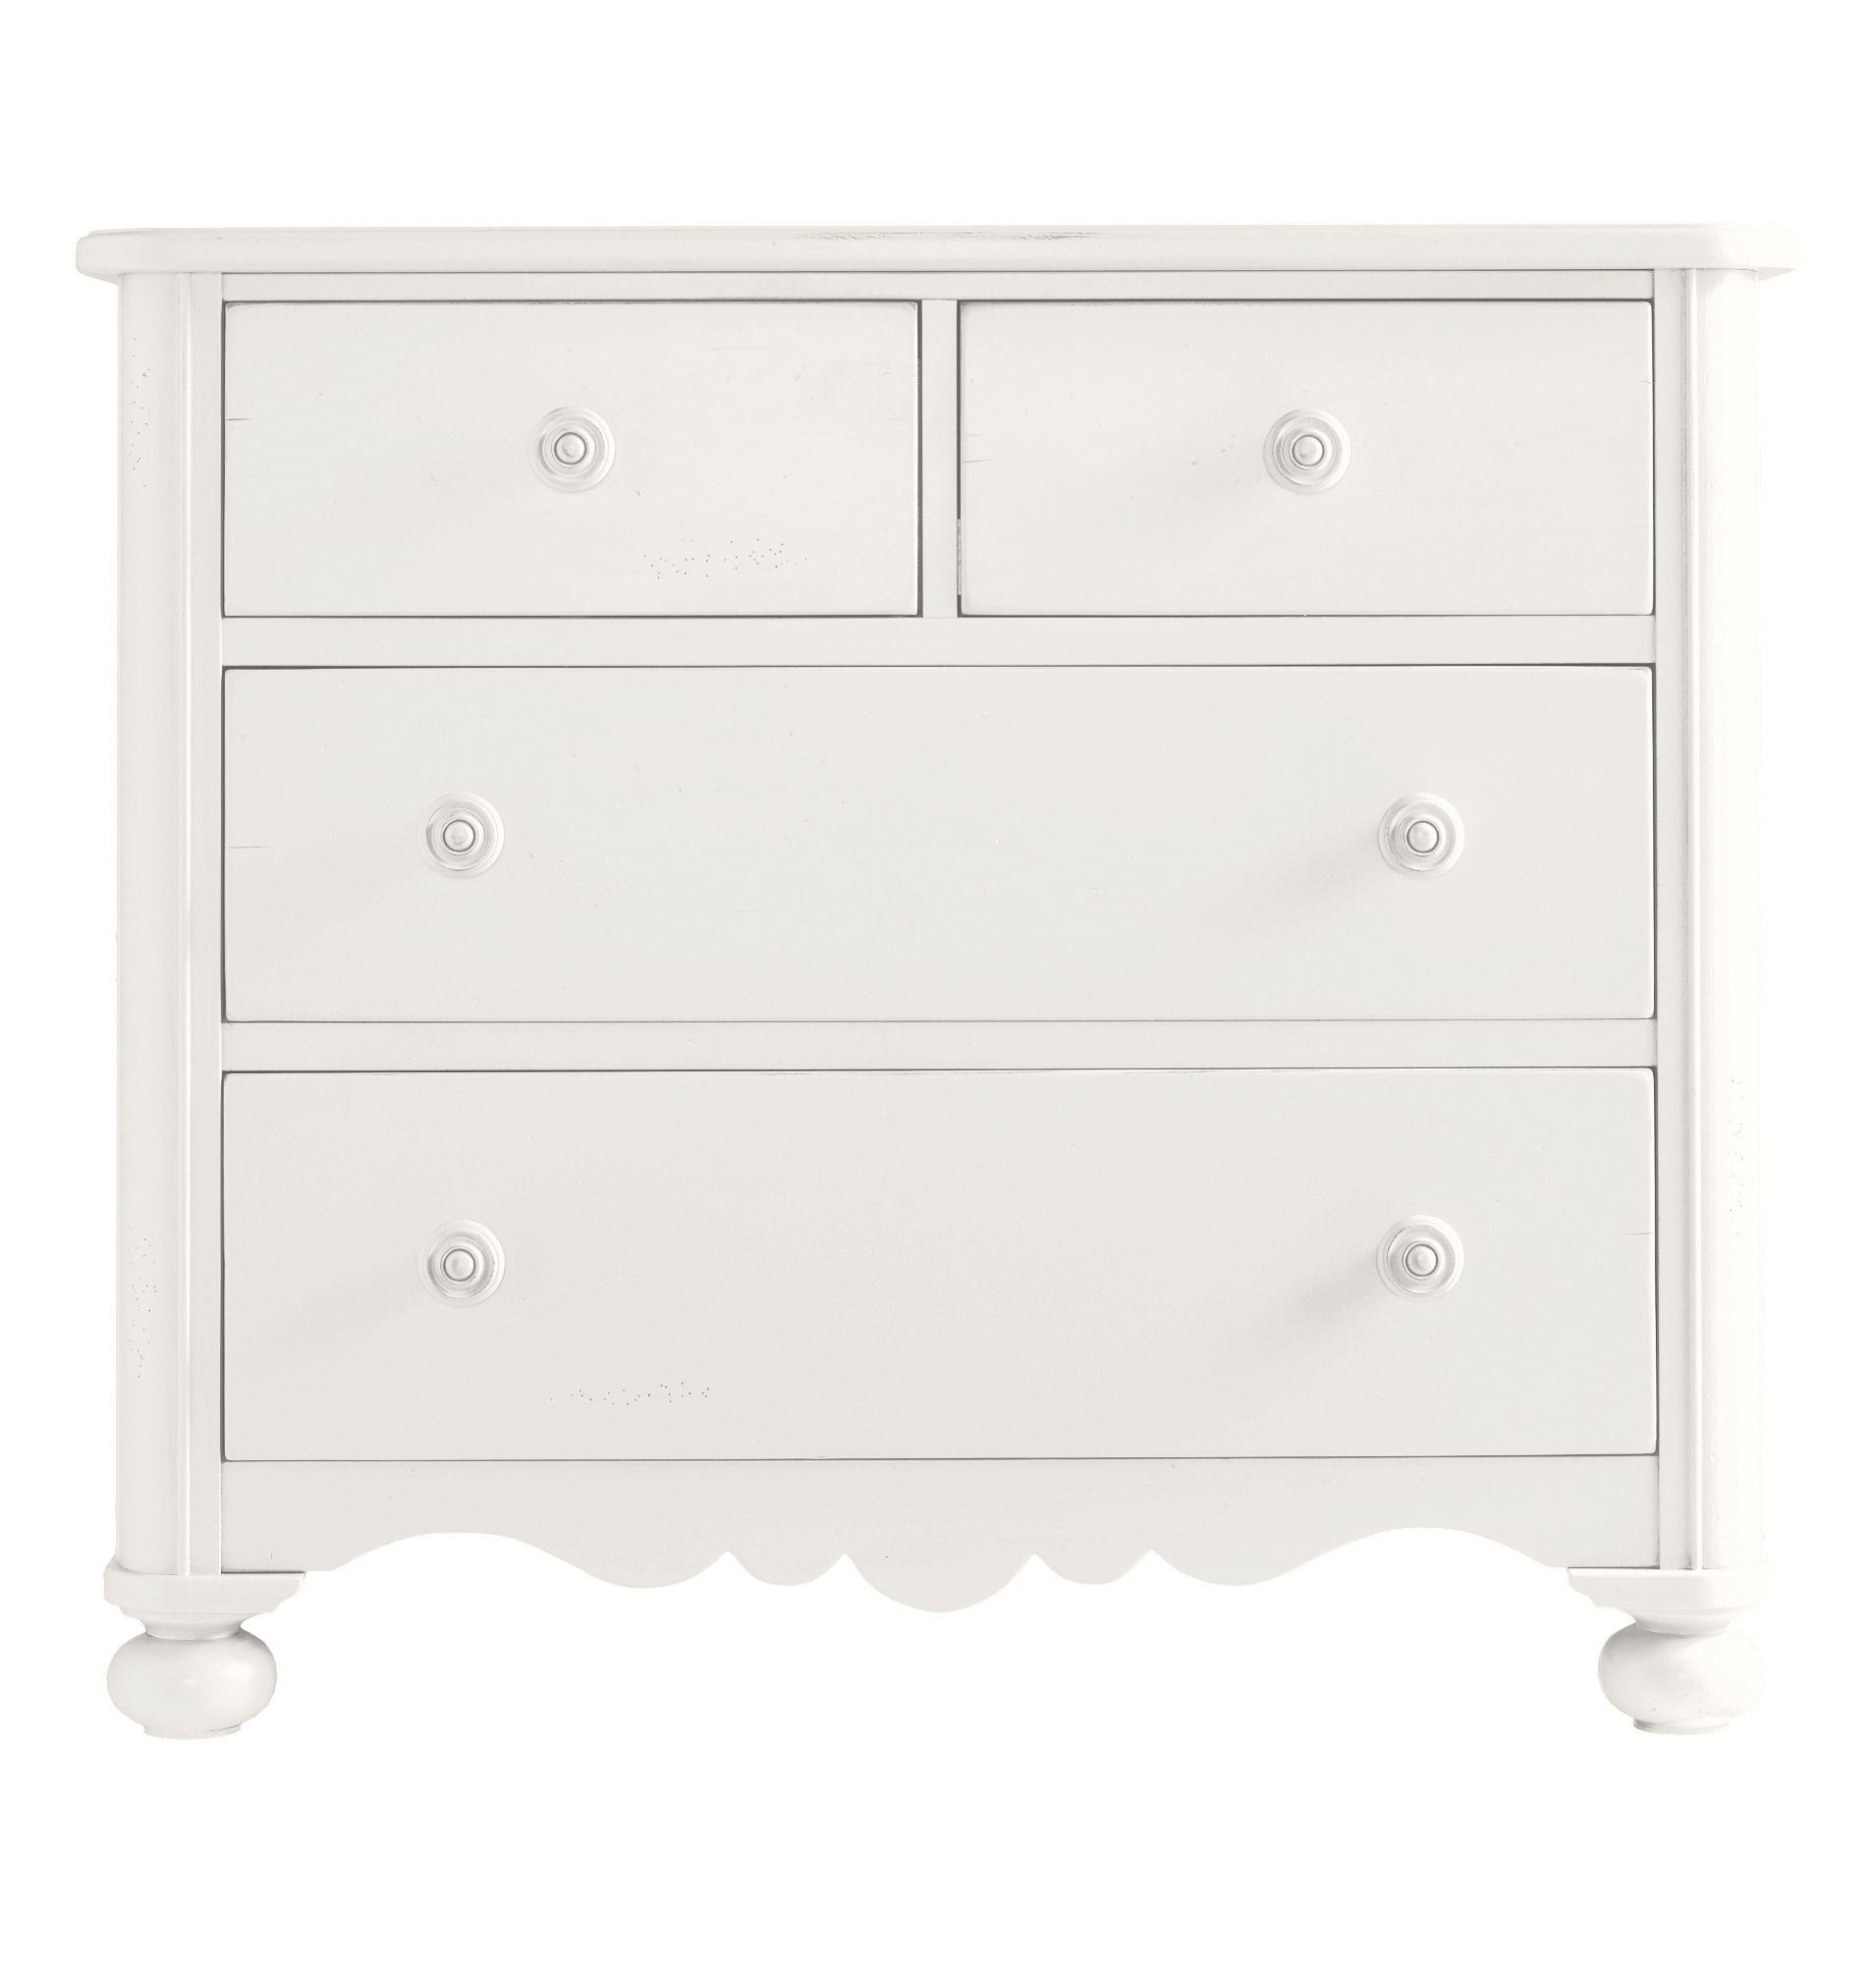 Stanley Furniture Coastal Living Retreat Seaside Chest - Item Number: 411-23-02